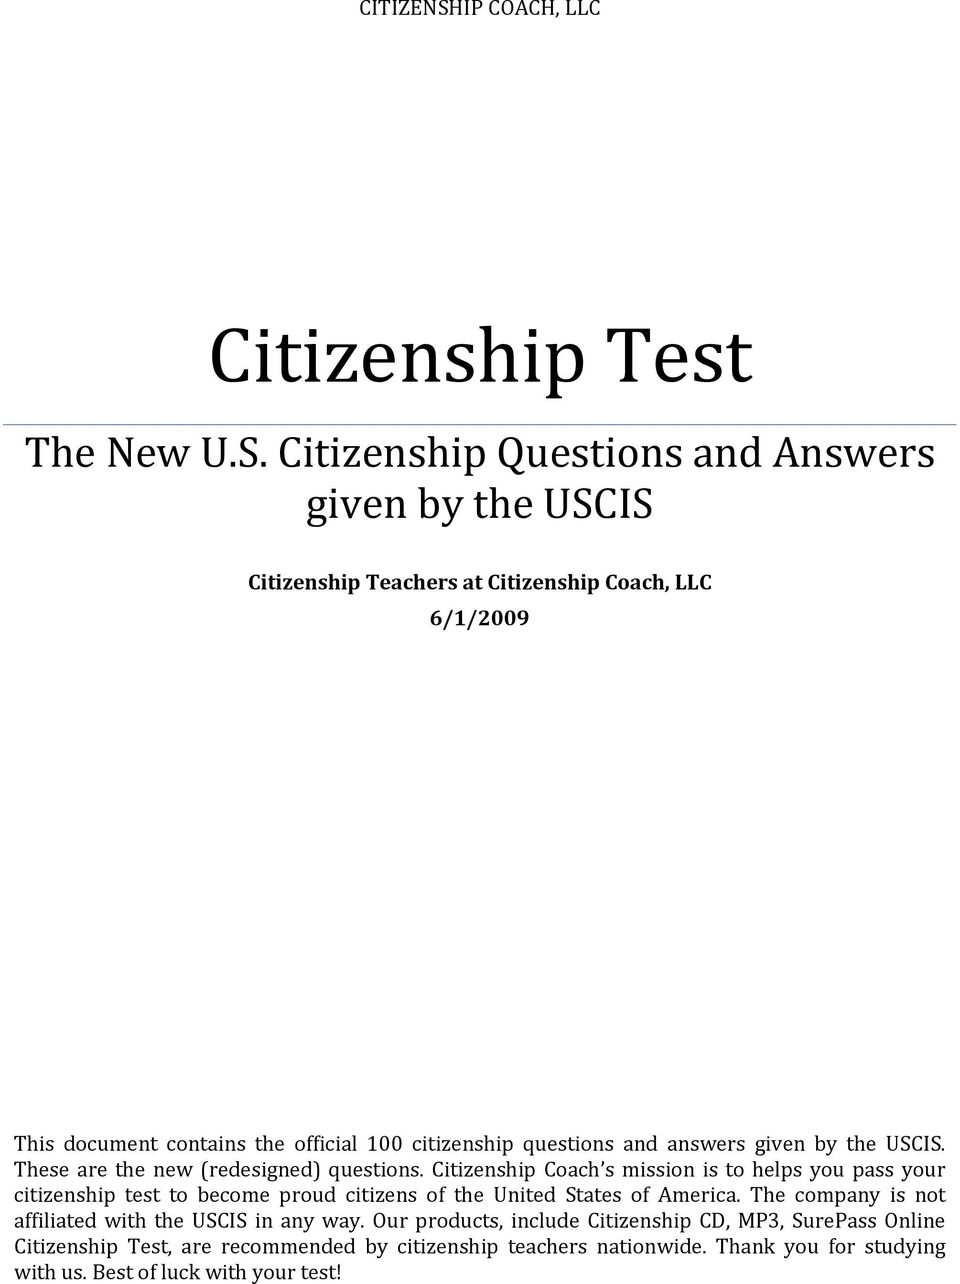 Citizenship Questions and Answers given by the USCIS Citizenship Teachers at Citizenship Coach, LLC 6/1/2009 This document contains the official 100 citizenship